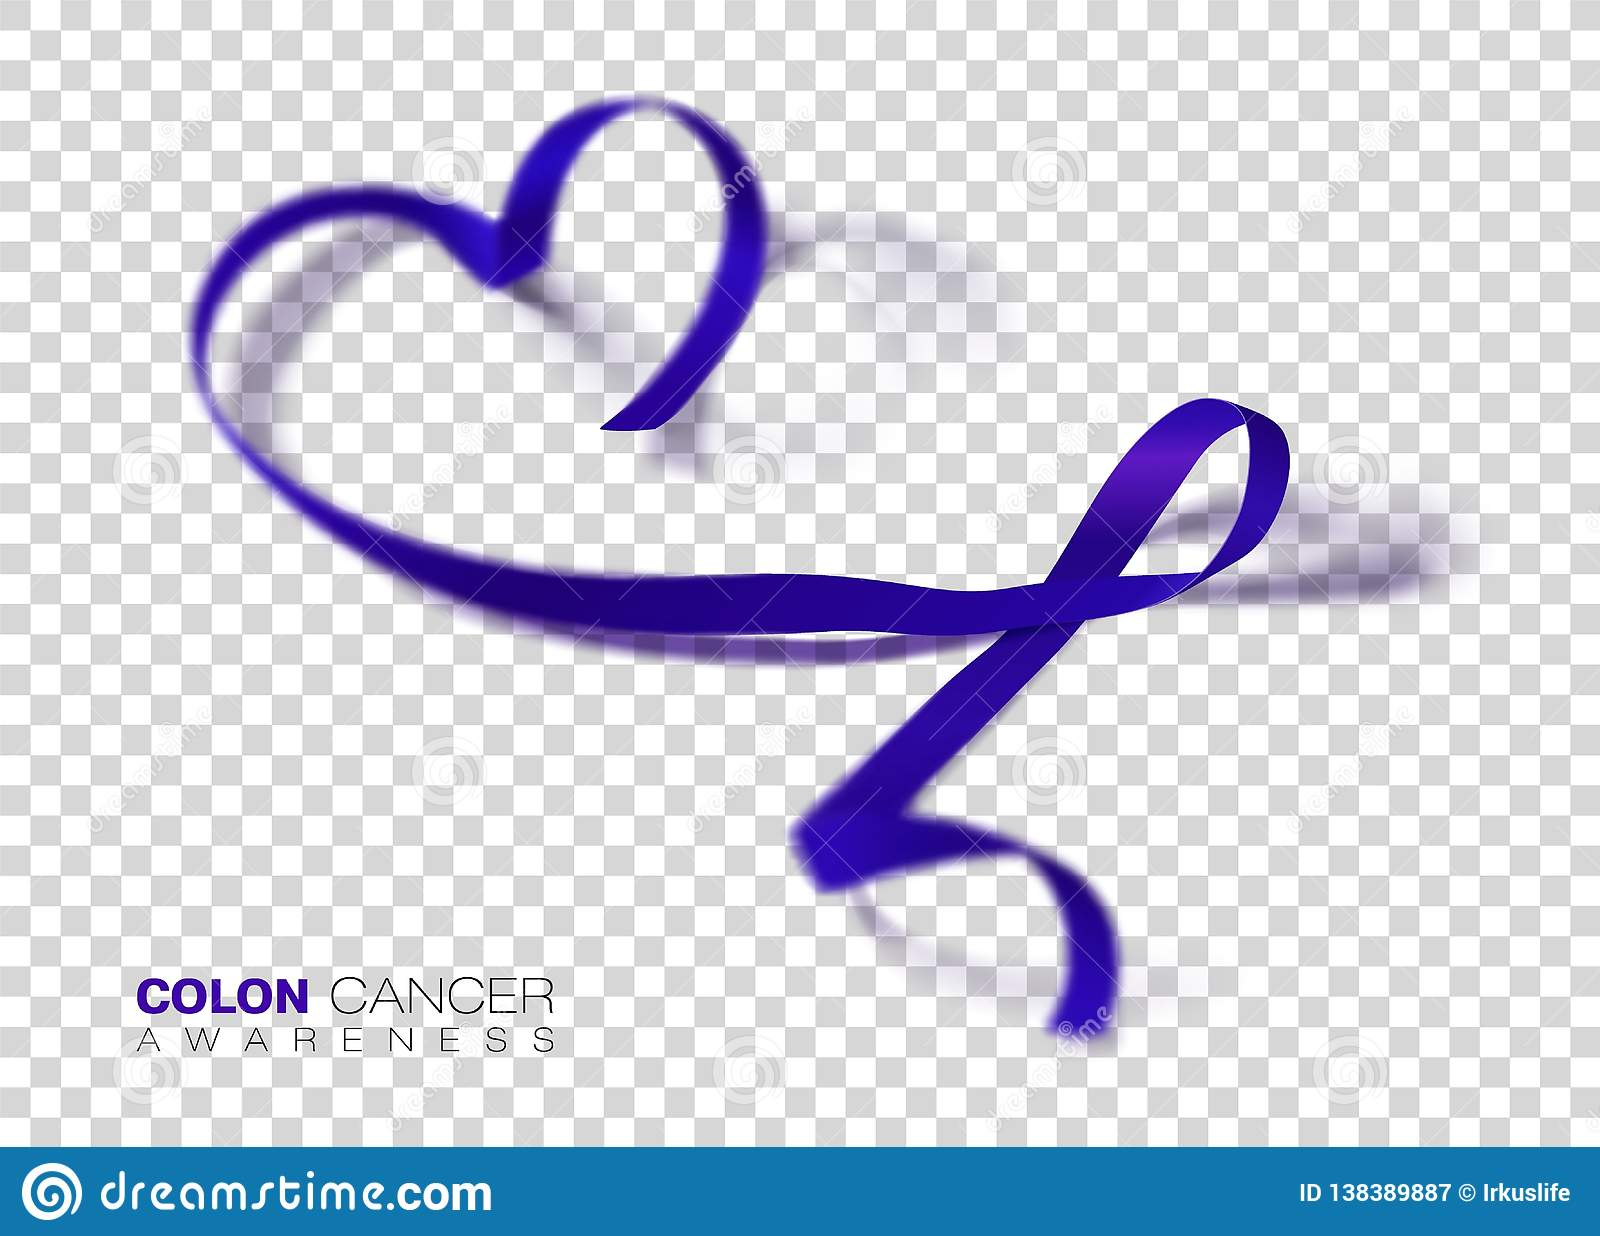 Colon Cancer Awareness Month Dark Blue Color Ribbon Isolated On Transparent Background Colorectal Cancer Vector Design Template Stock Illustration Illustration Of Medicine March 138389887